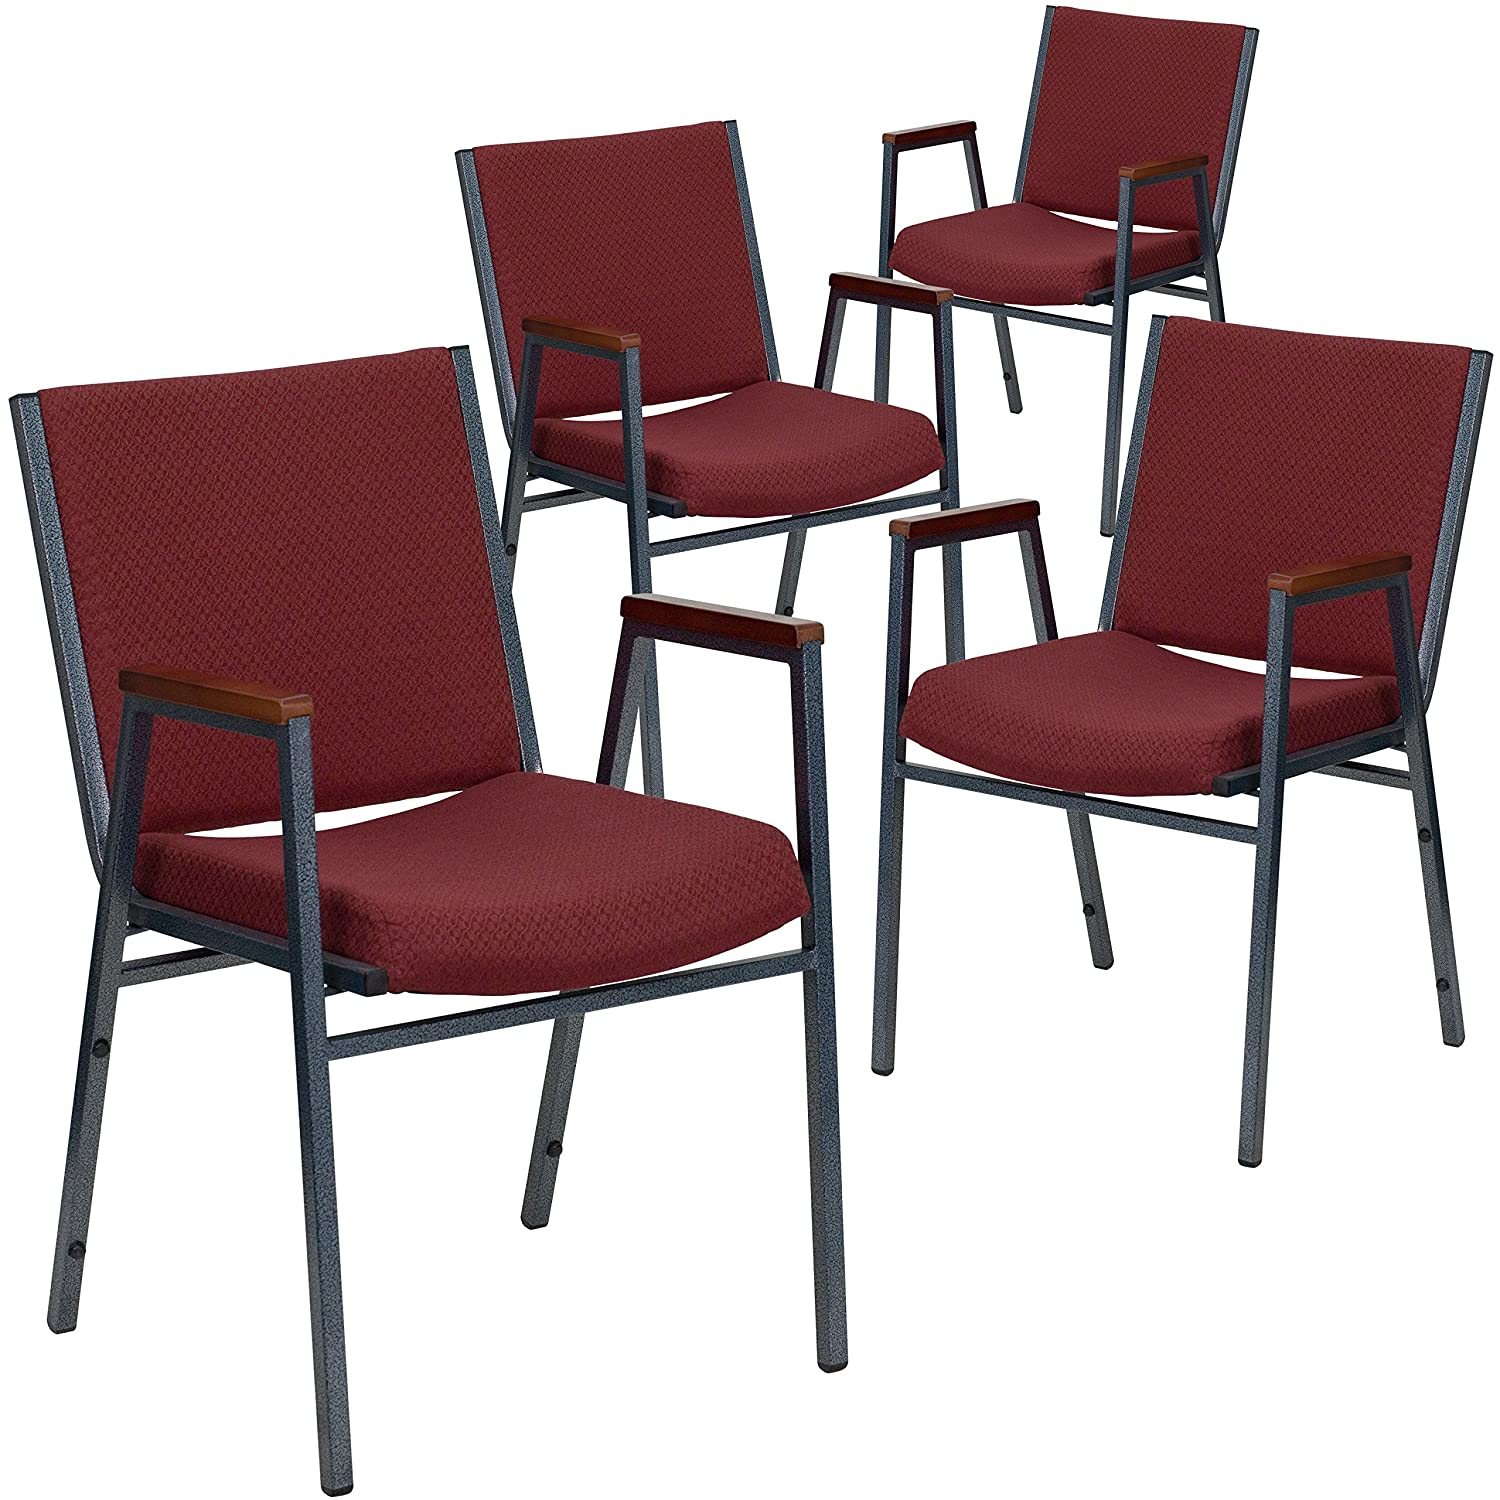 Flash Furniture 4 Pk. HERCULES Series Heavy Duty Burgundy Patterned Fabric Stack Chair with Arms